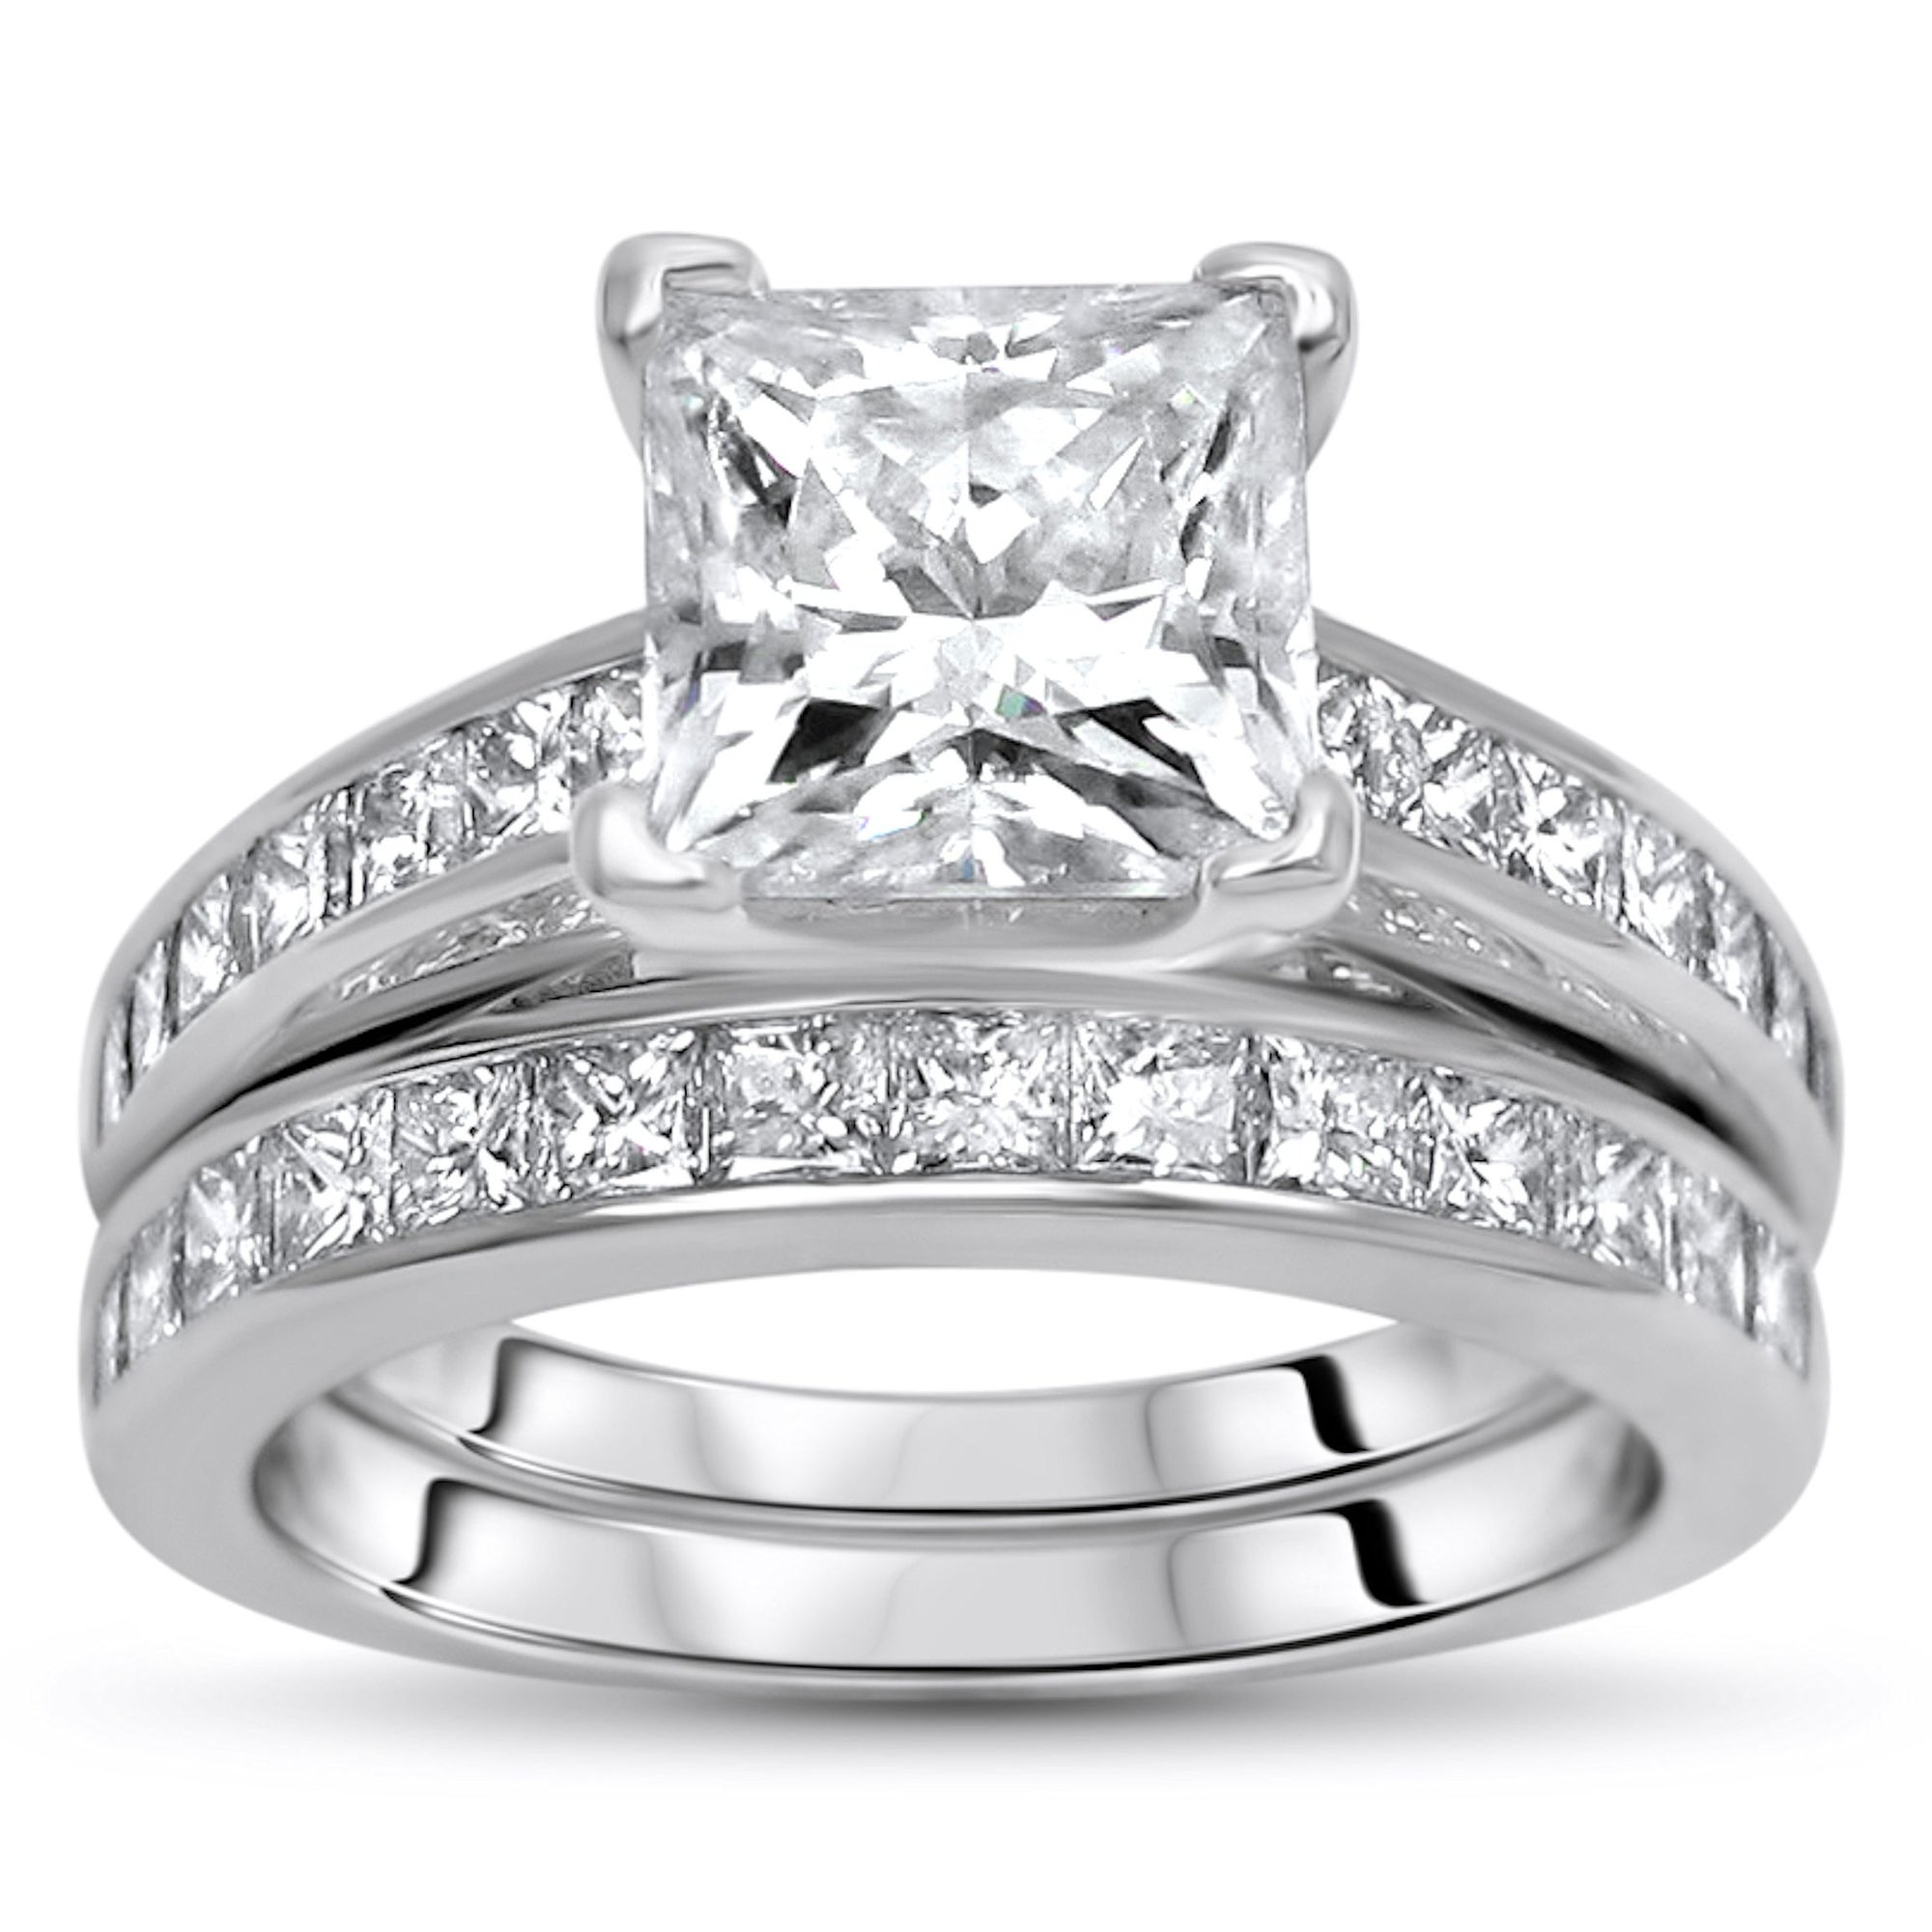 14k White Gold 2 0ct Princess Cut Moissanite And 1ct Princess Cut Diamond Engagement Ring Set On Sale Overstock 31525277